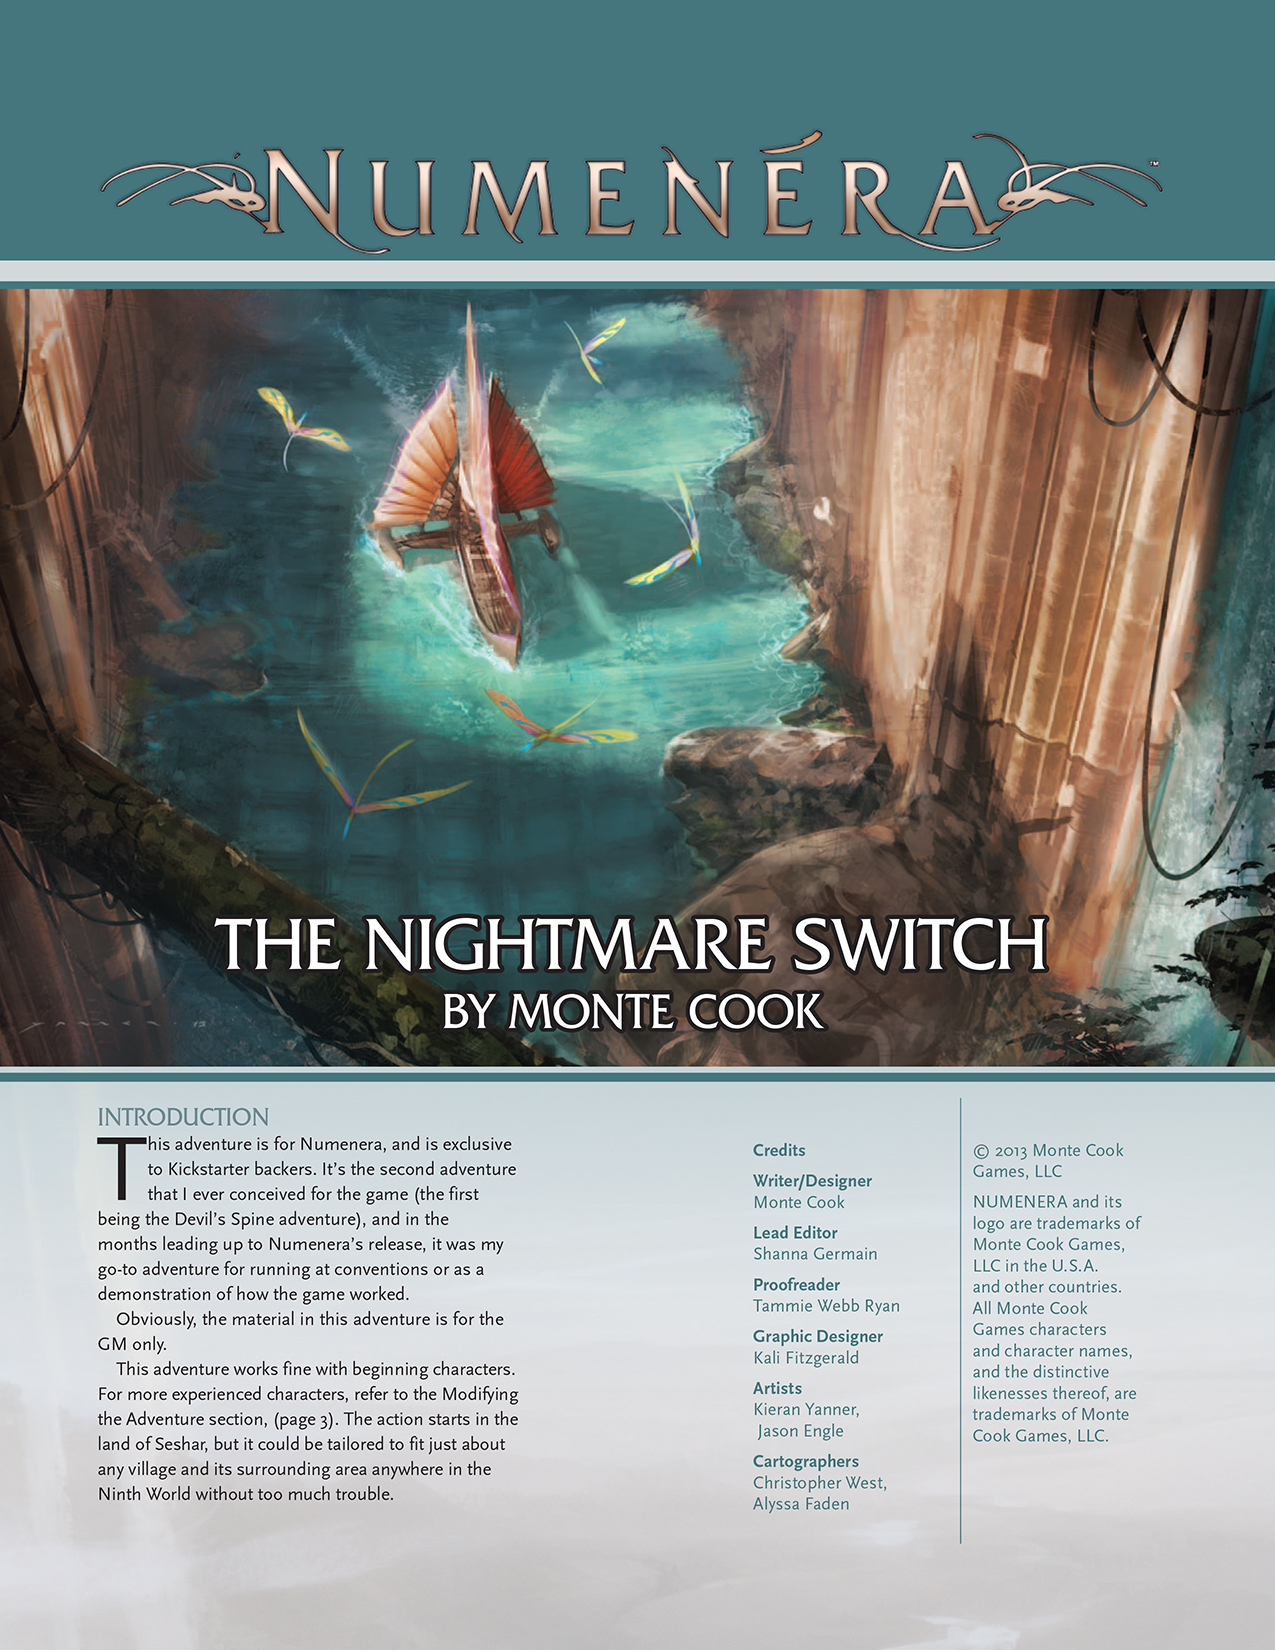 TheNightmareSwitch